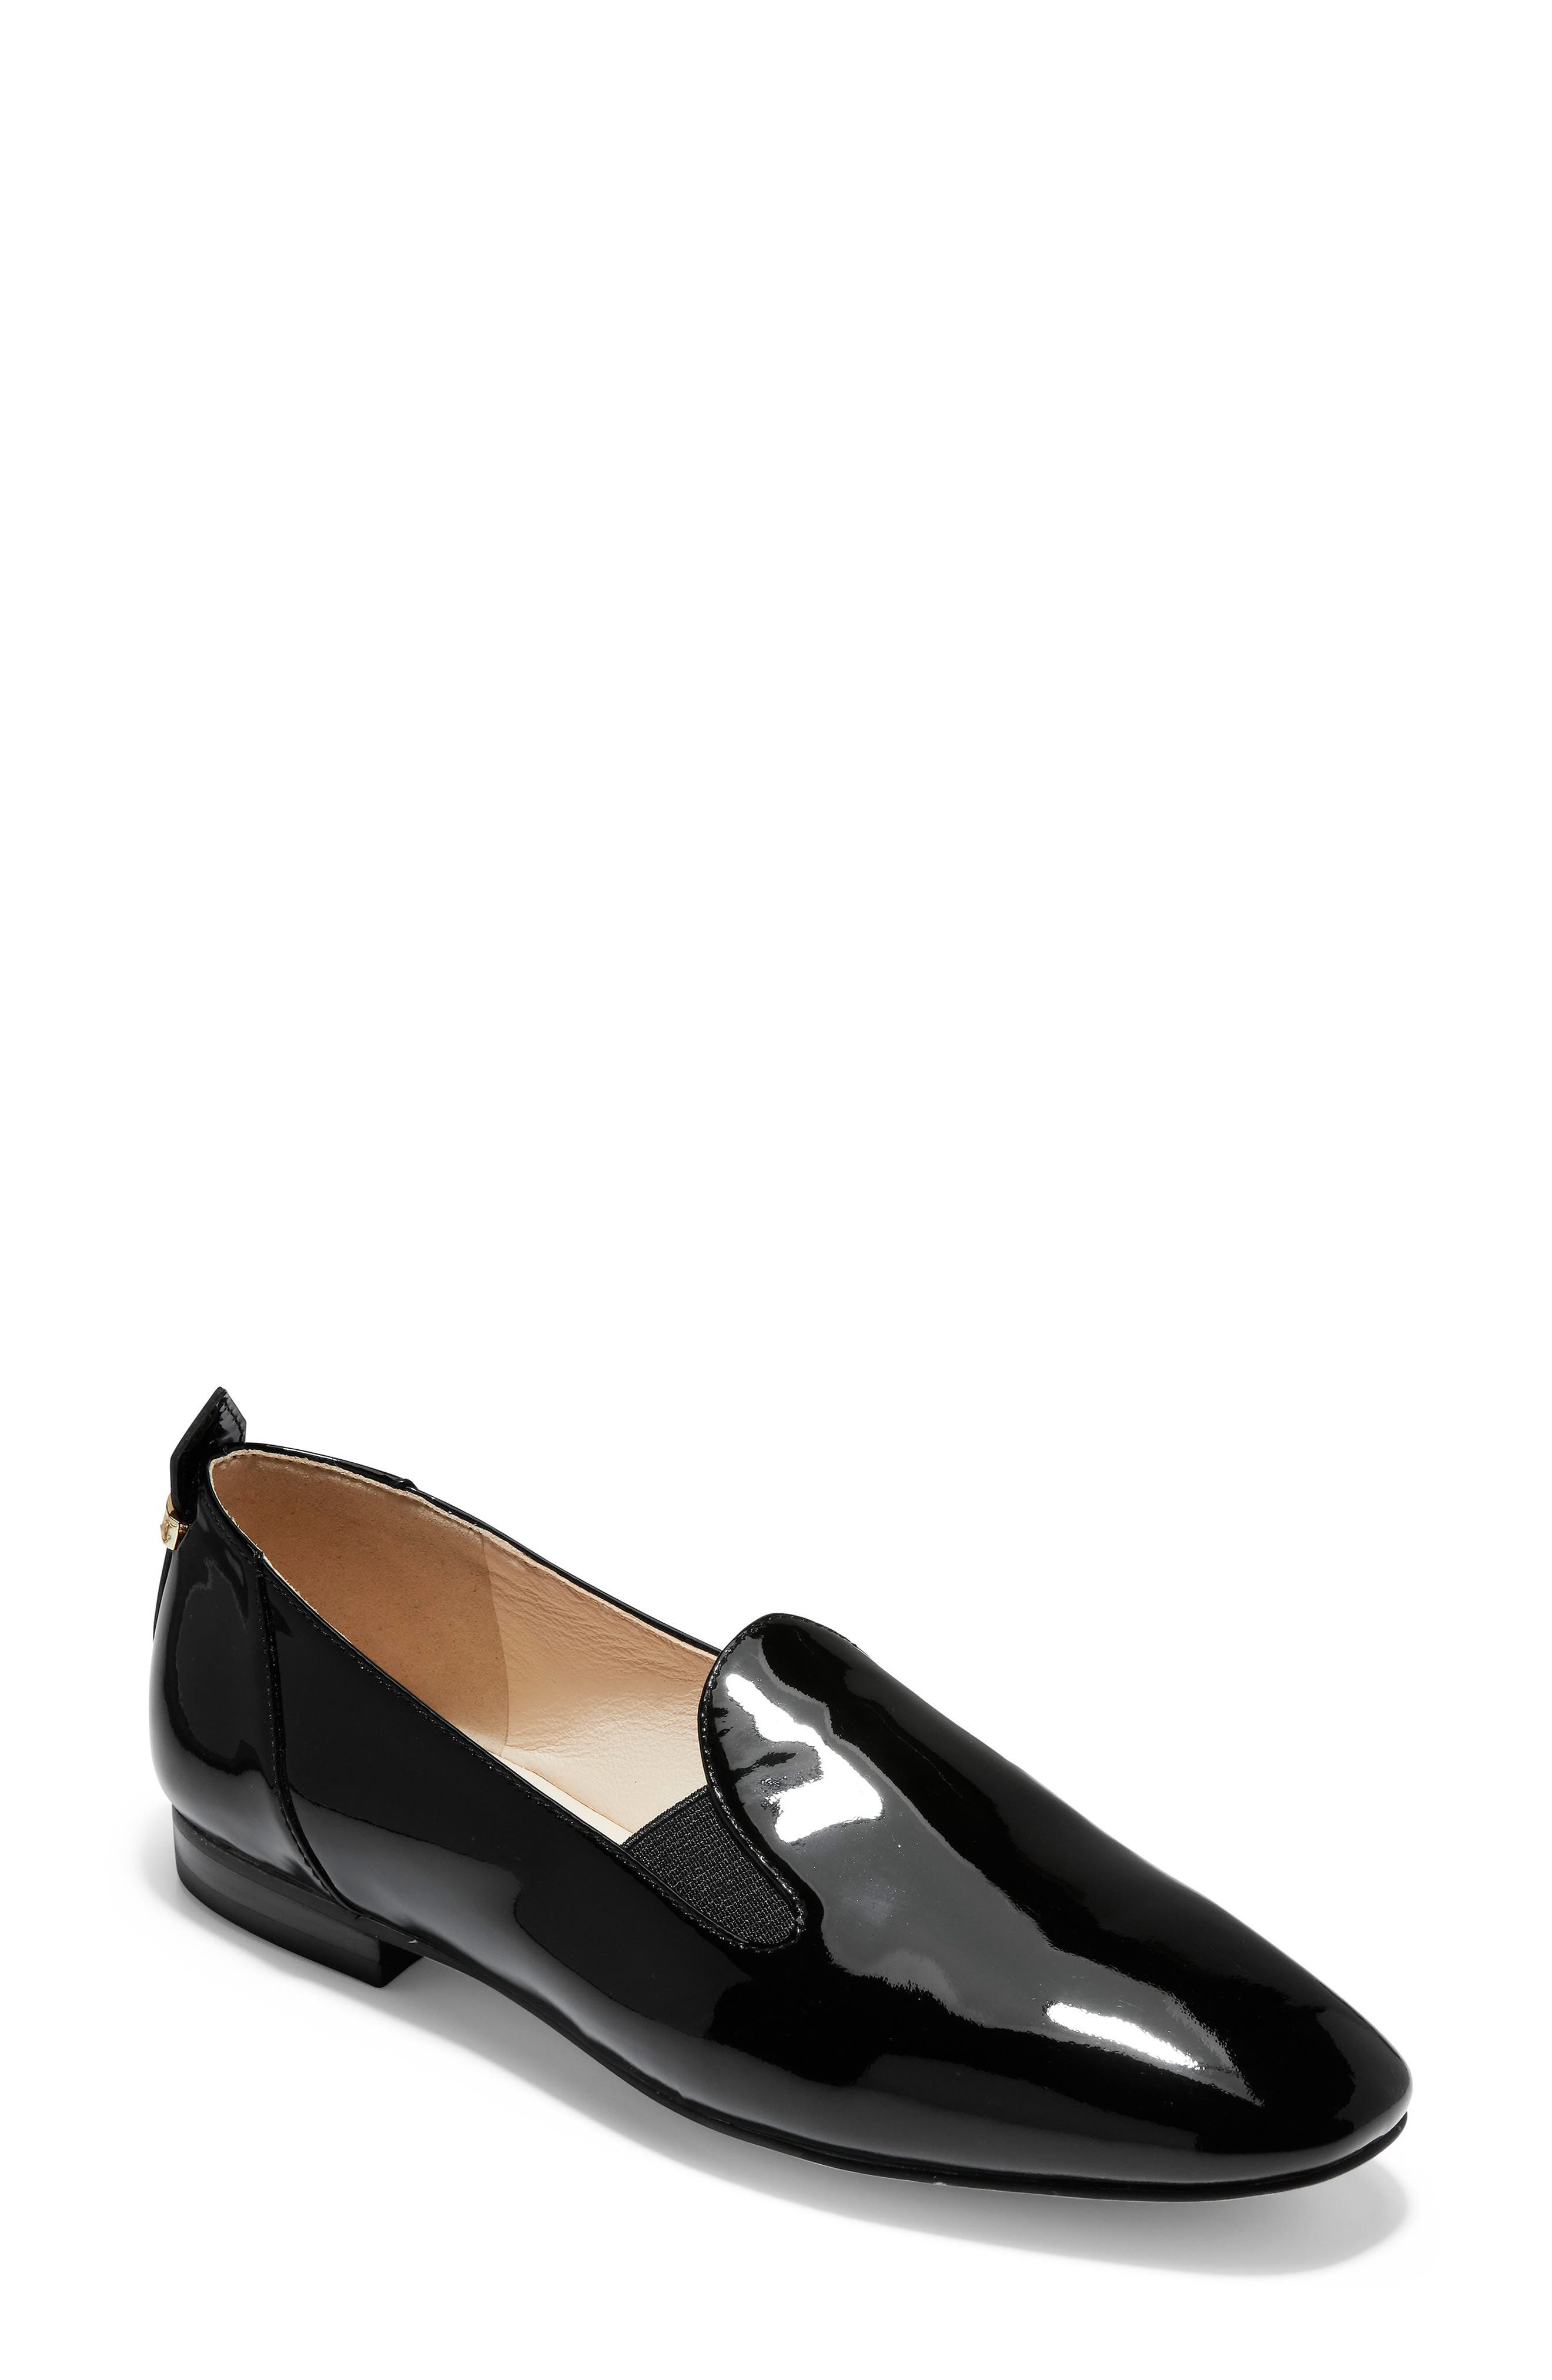 COLE HAAN Portia Loafer, Main, color, BLACK PATENT LEATHER